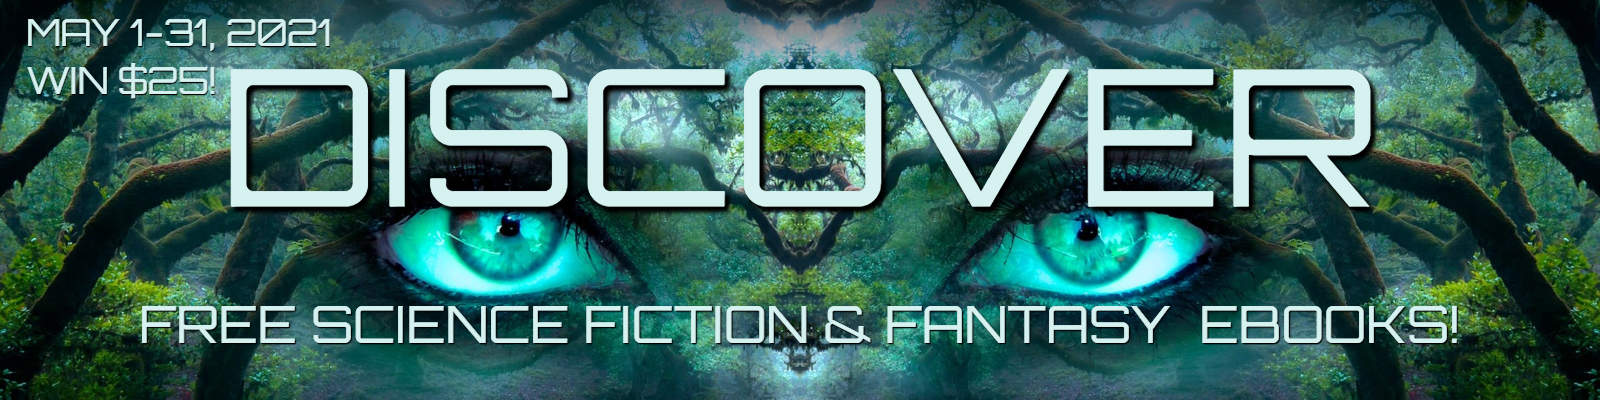 Discover Sci-fi and Fantasy